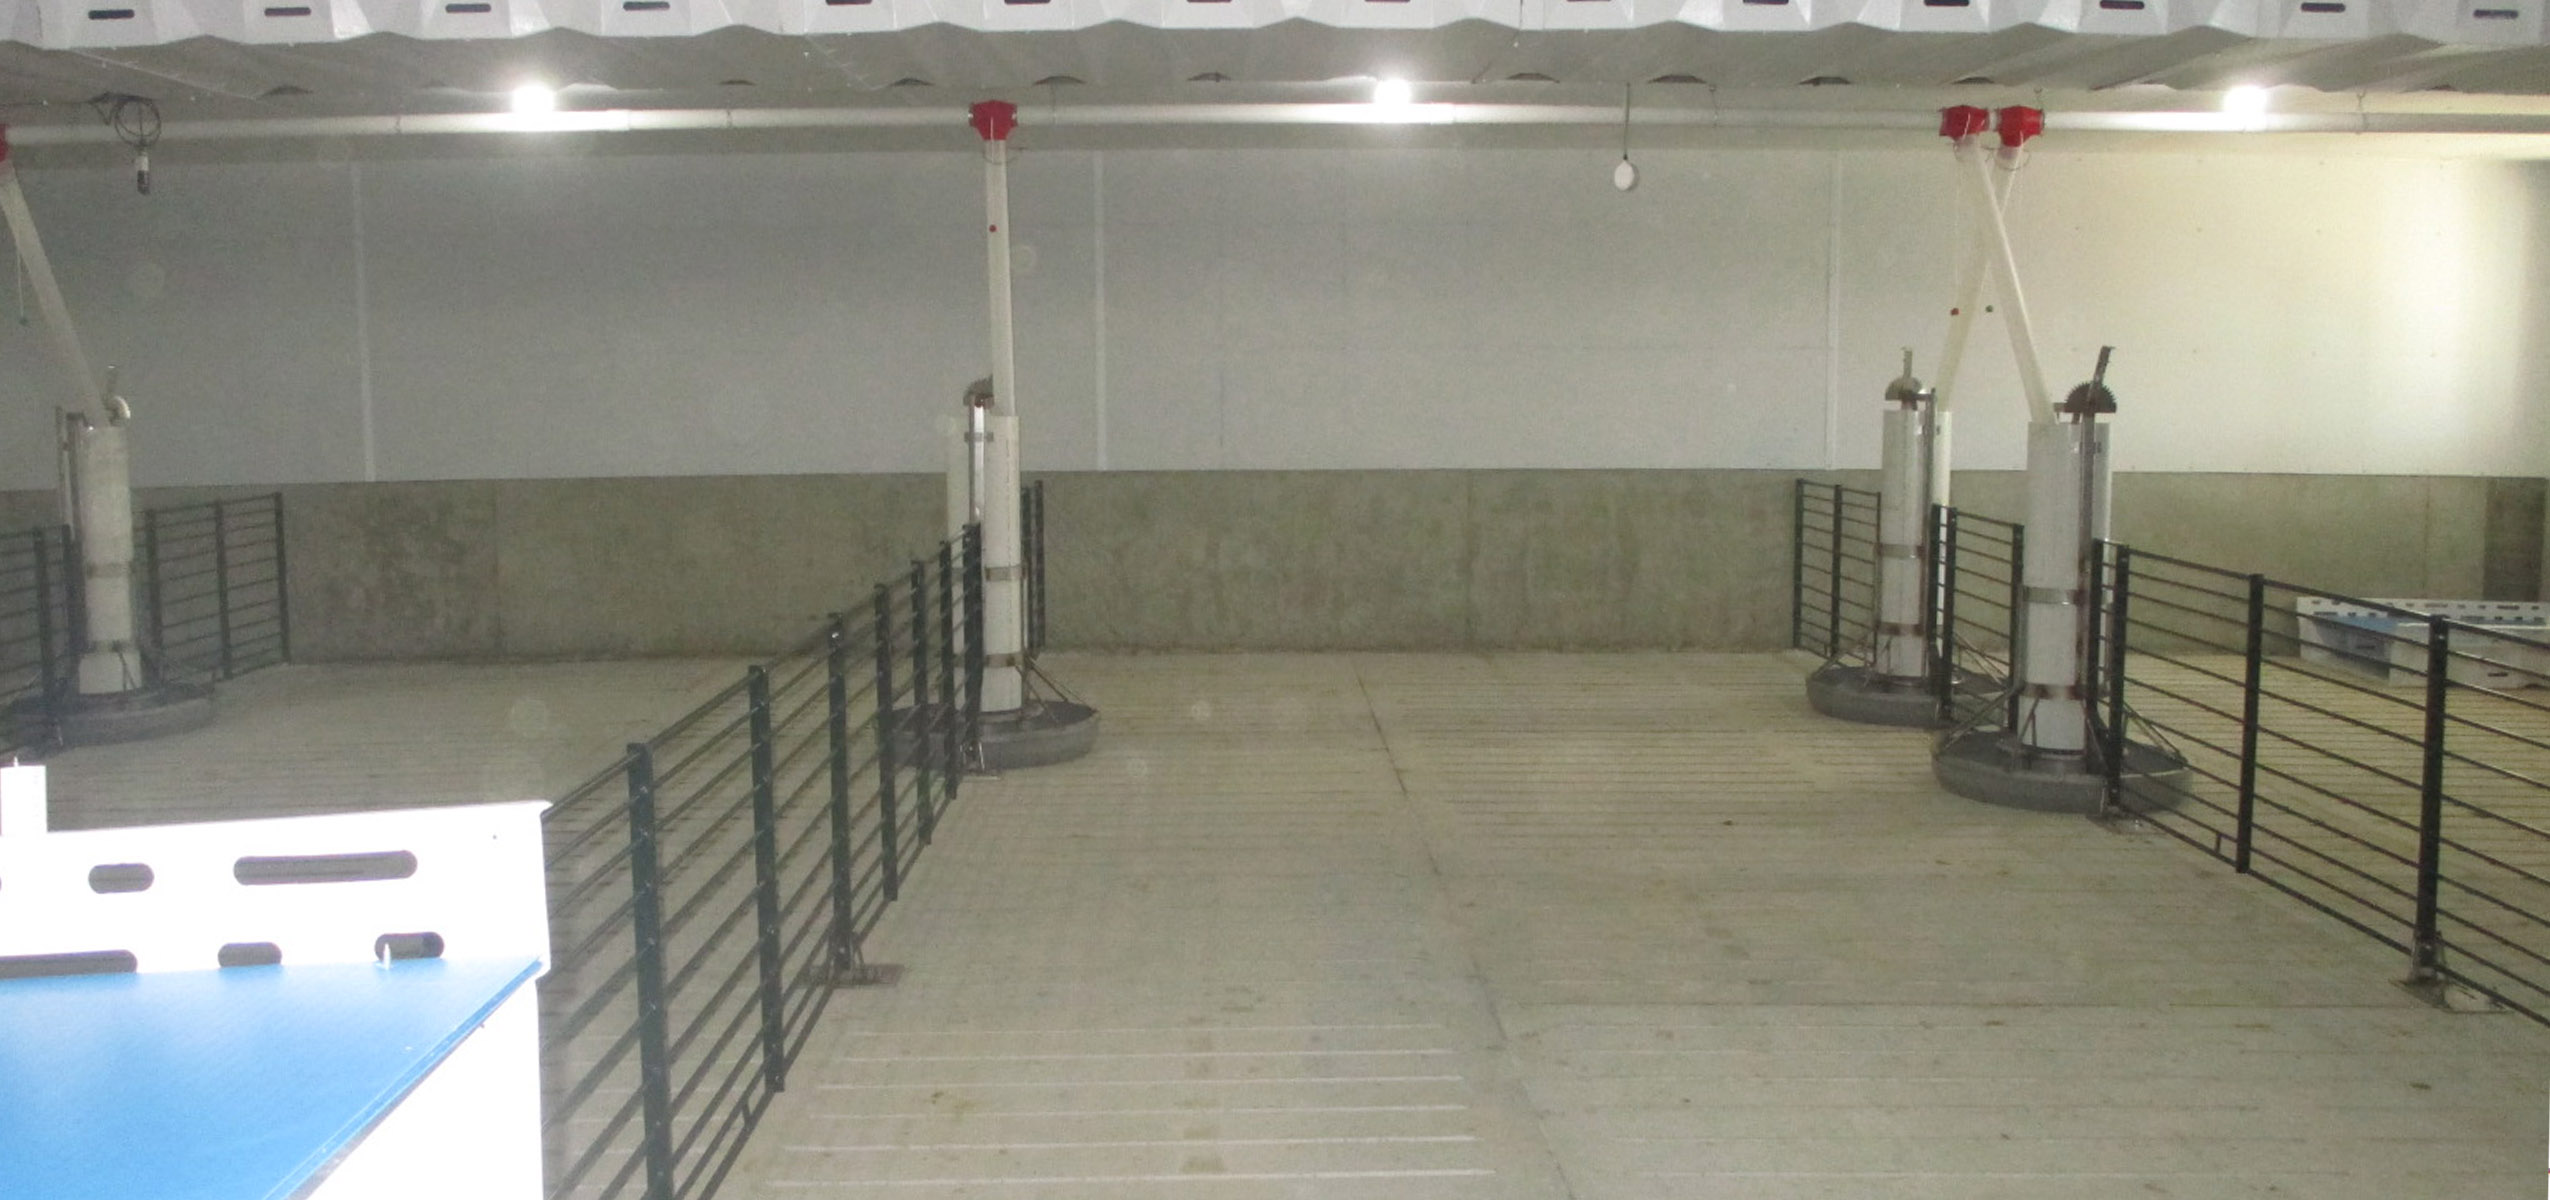 photo of empty finishing room that will house swine